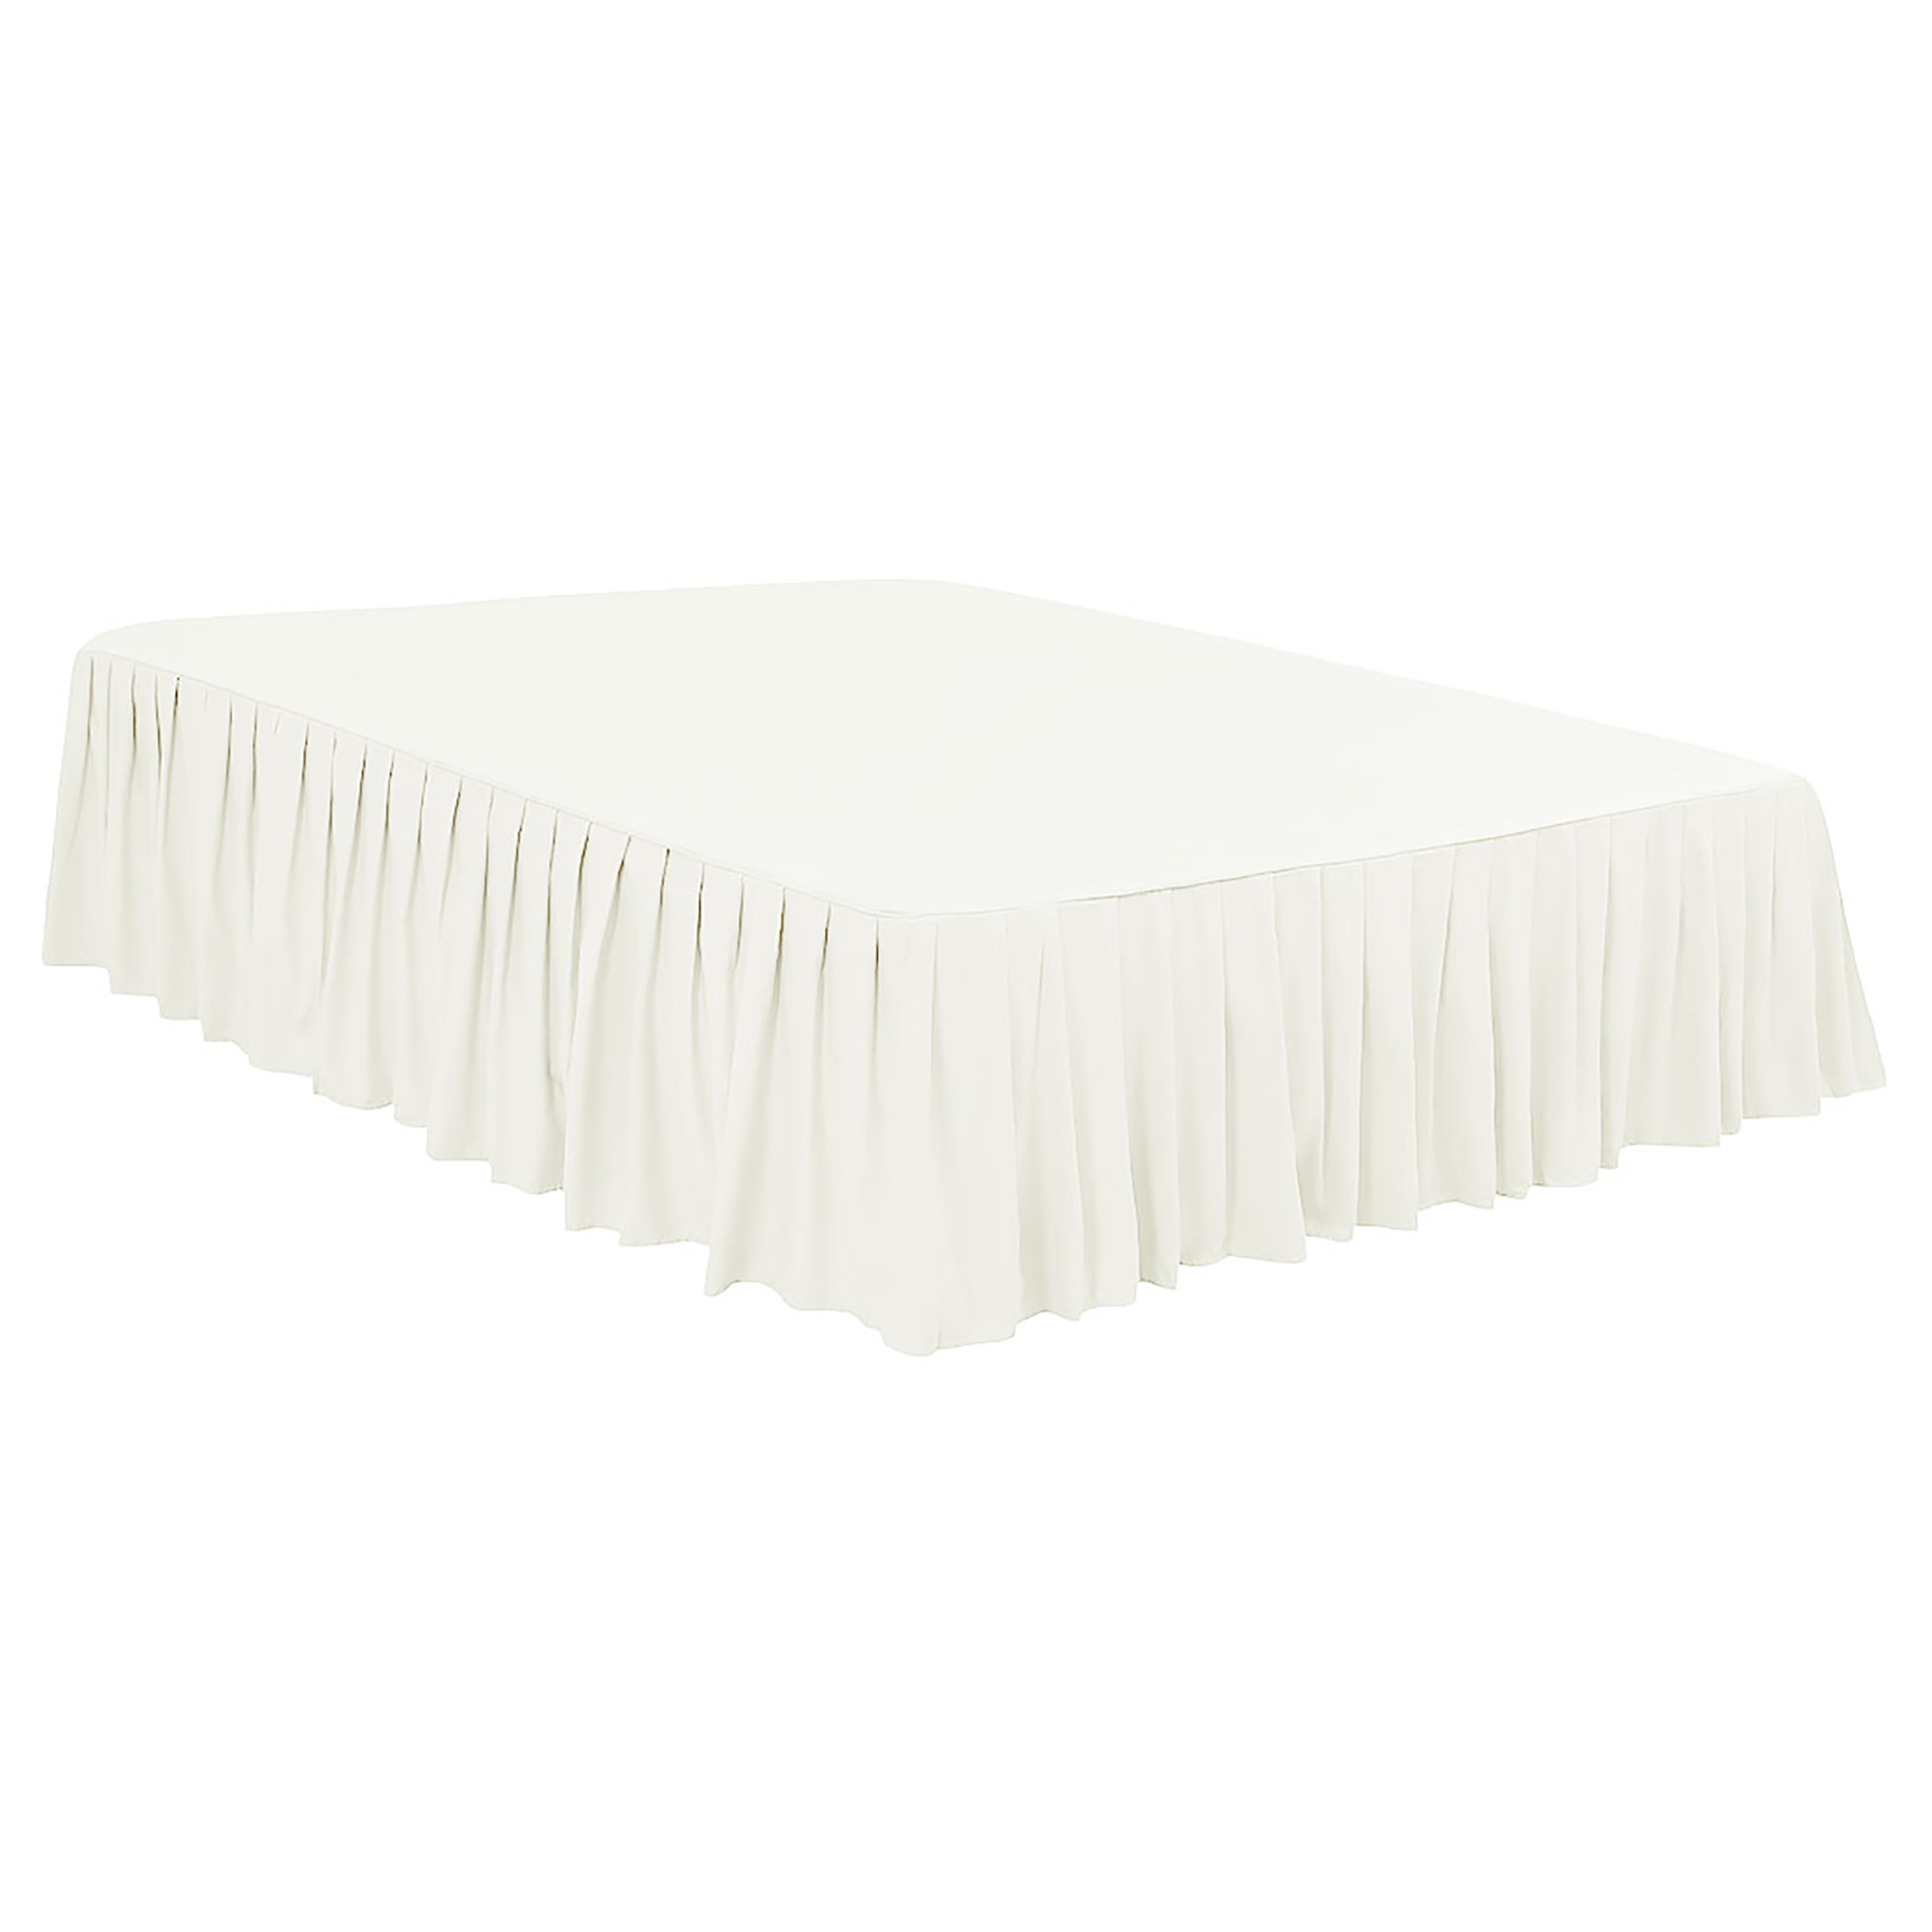 "Ruffled Bed Skirts Polyester Brushed Soft Platform 16"" Drop King Pearl White"